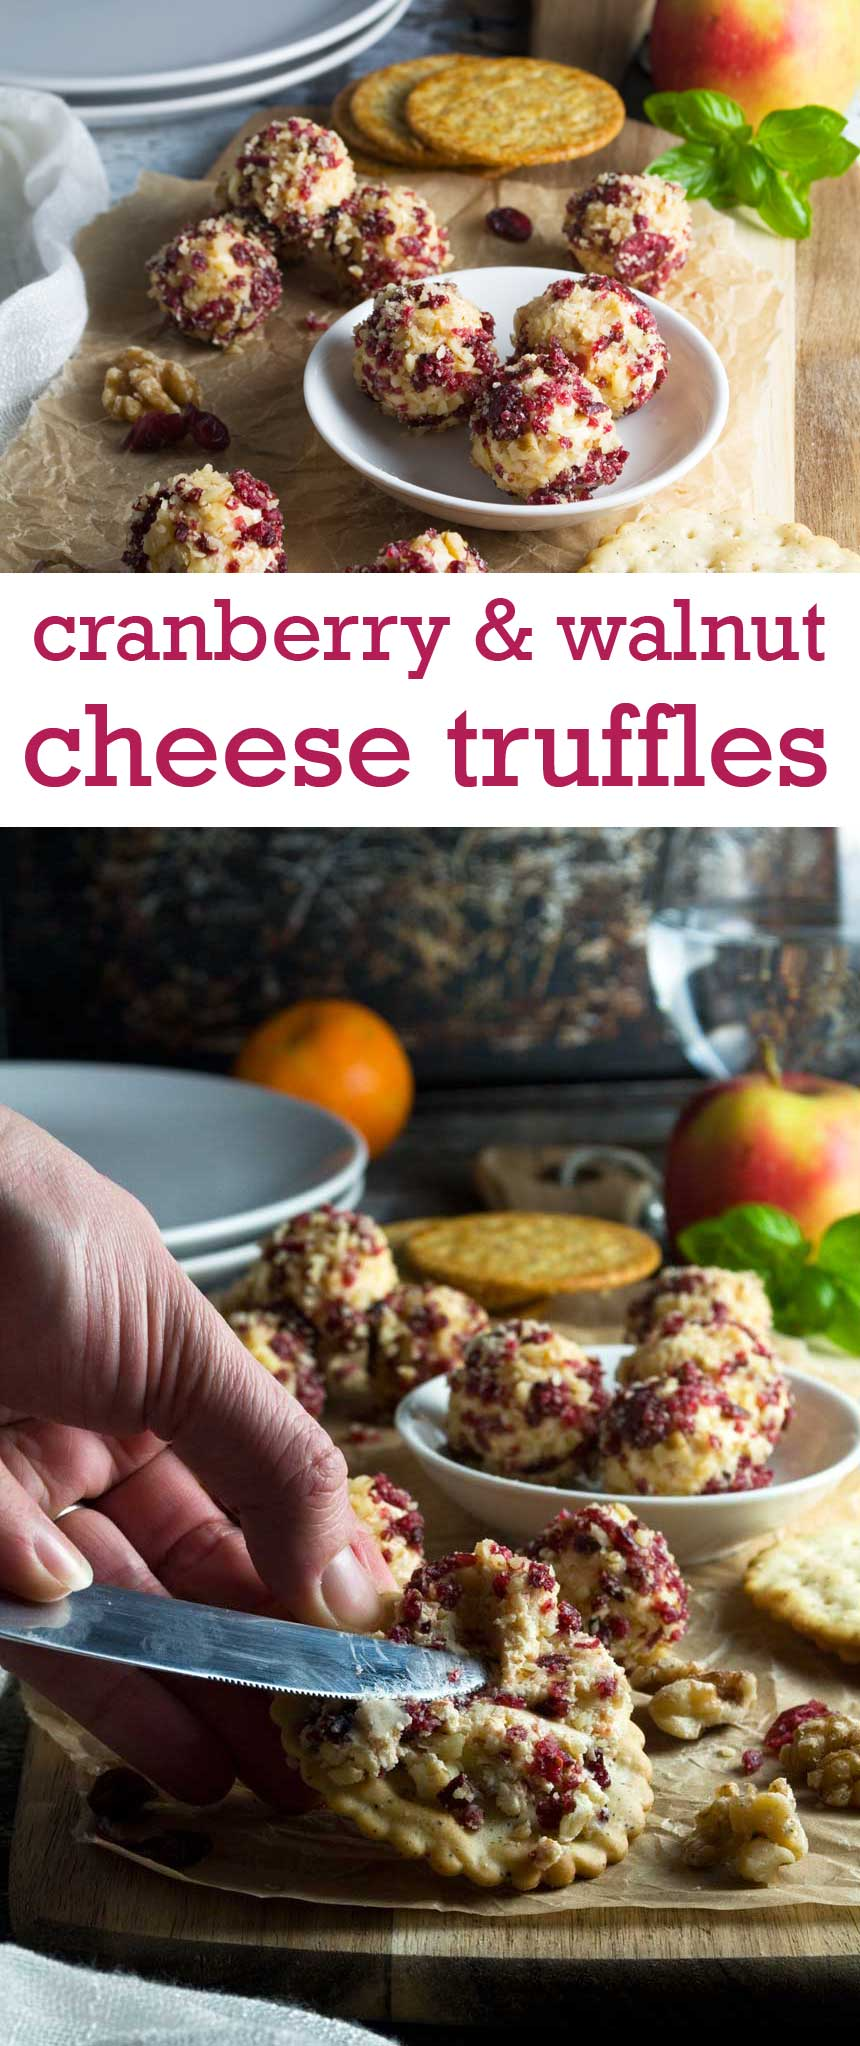 These cranberry and walnut cheese truffles are perfect for entertaining - and so easy to make!